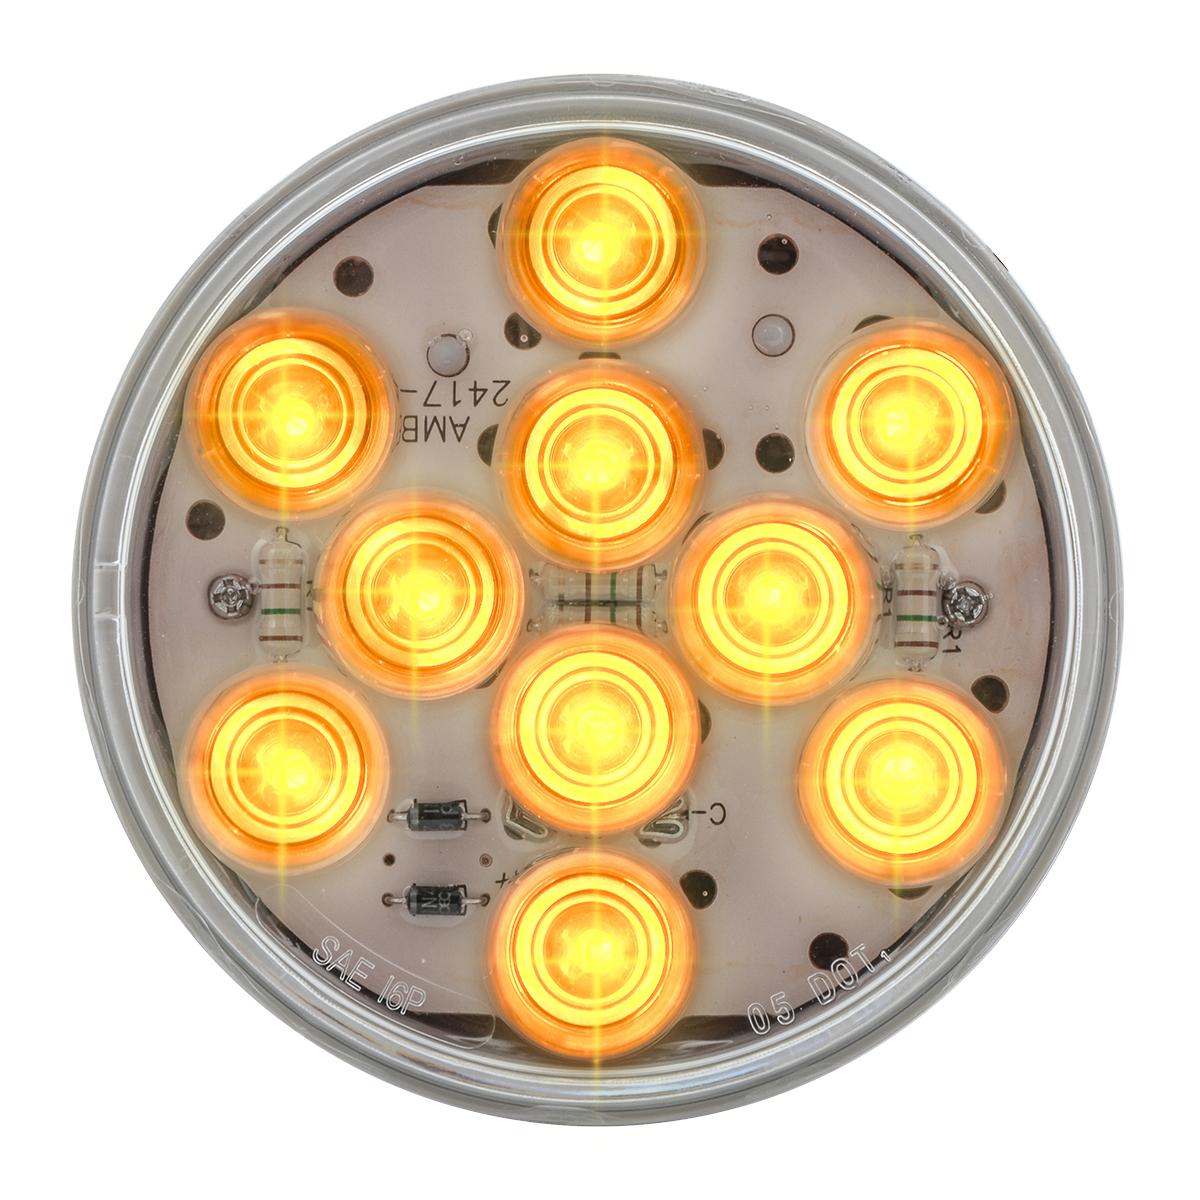 "77451 4"" Mega 10 LED Light in Amber/Clear"